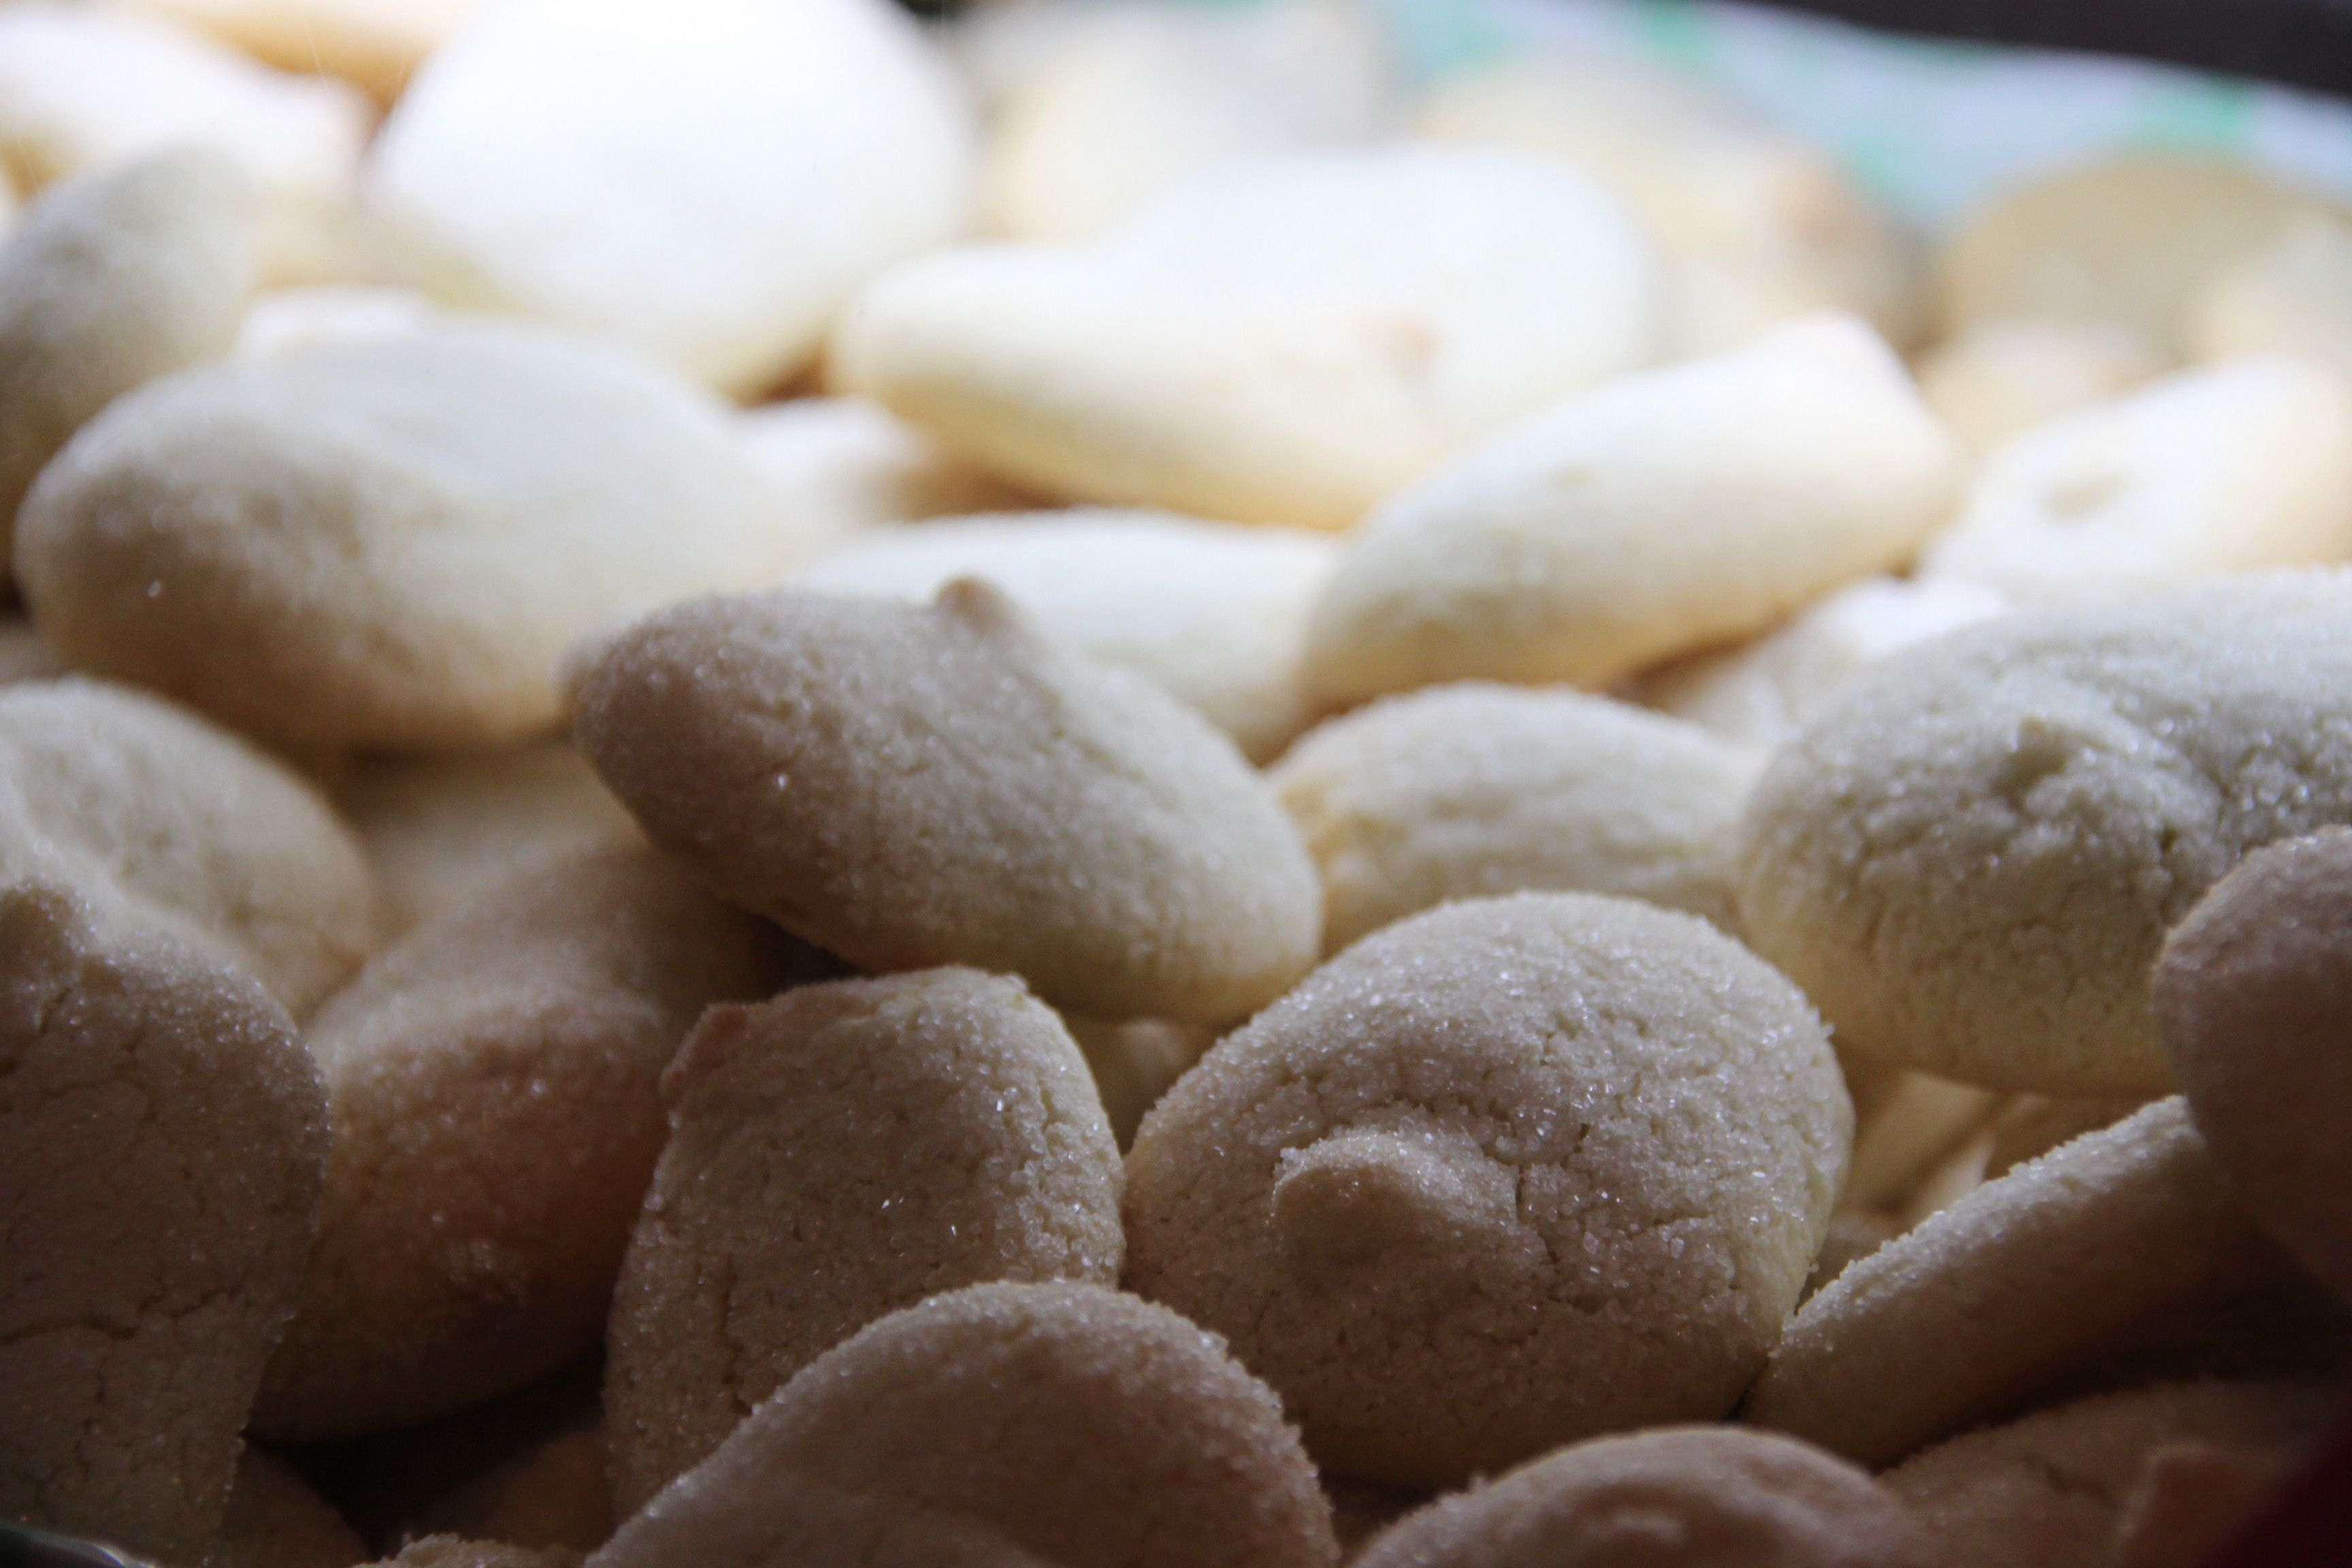 Fave dei morti are eaten in Perugia to celebrate the day of the dead or All Souls Day